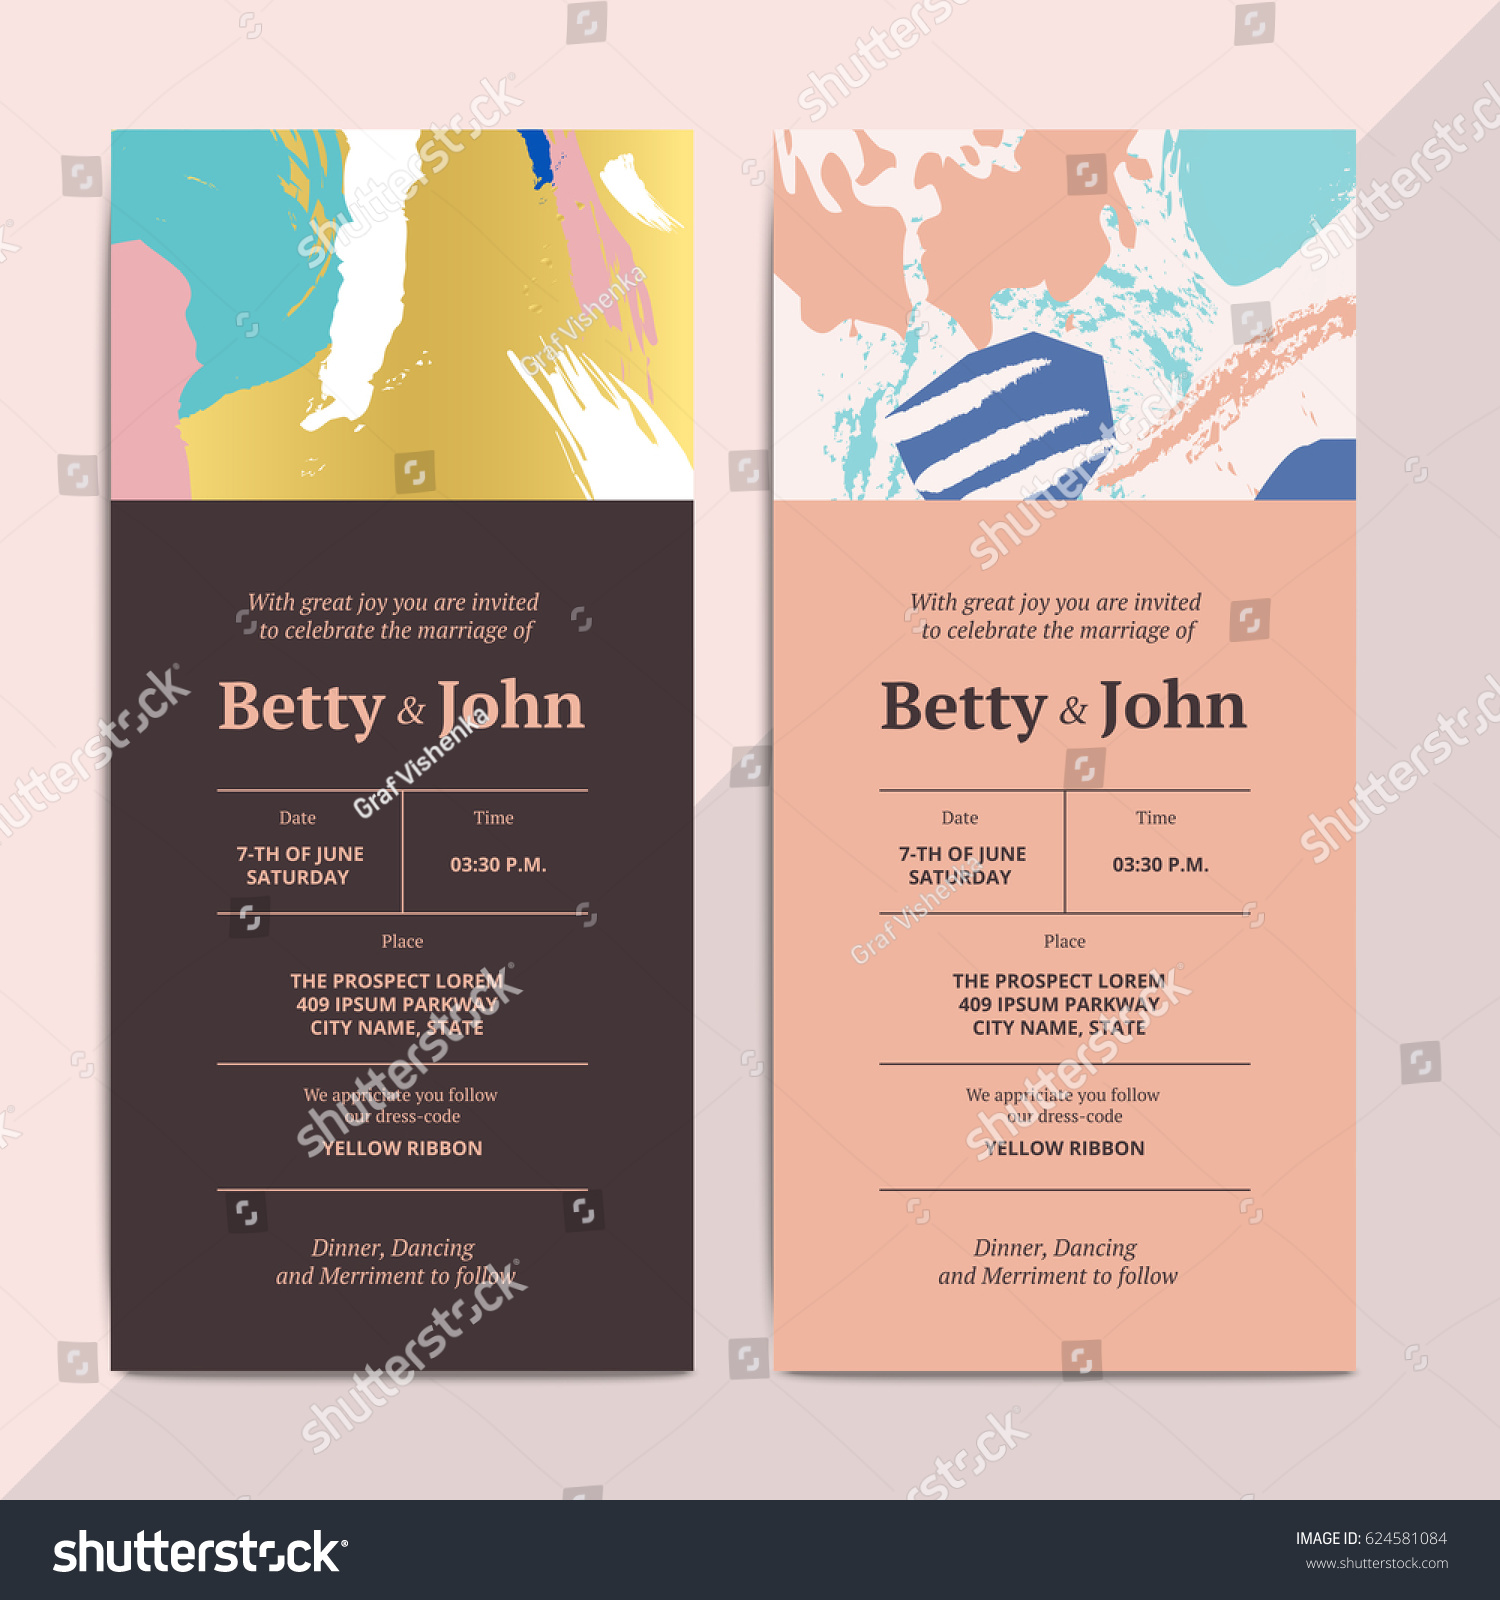 Trendy abstract wedding invitation cards templates stock vector trendy abstract wedding invitation cards templates modern luxury romantic greeting cards layout with artistic brush stopboris Choice Image